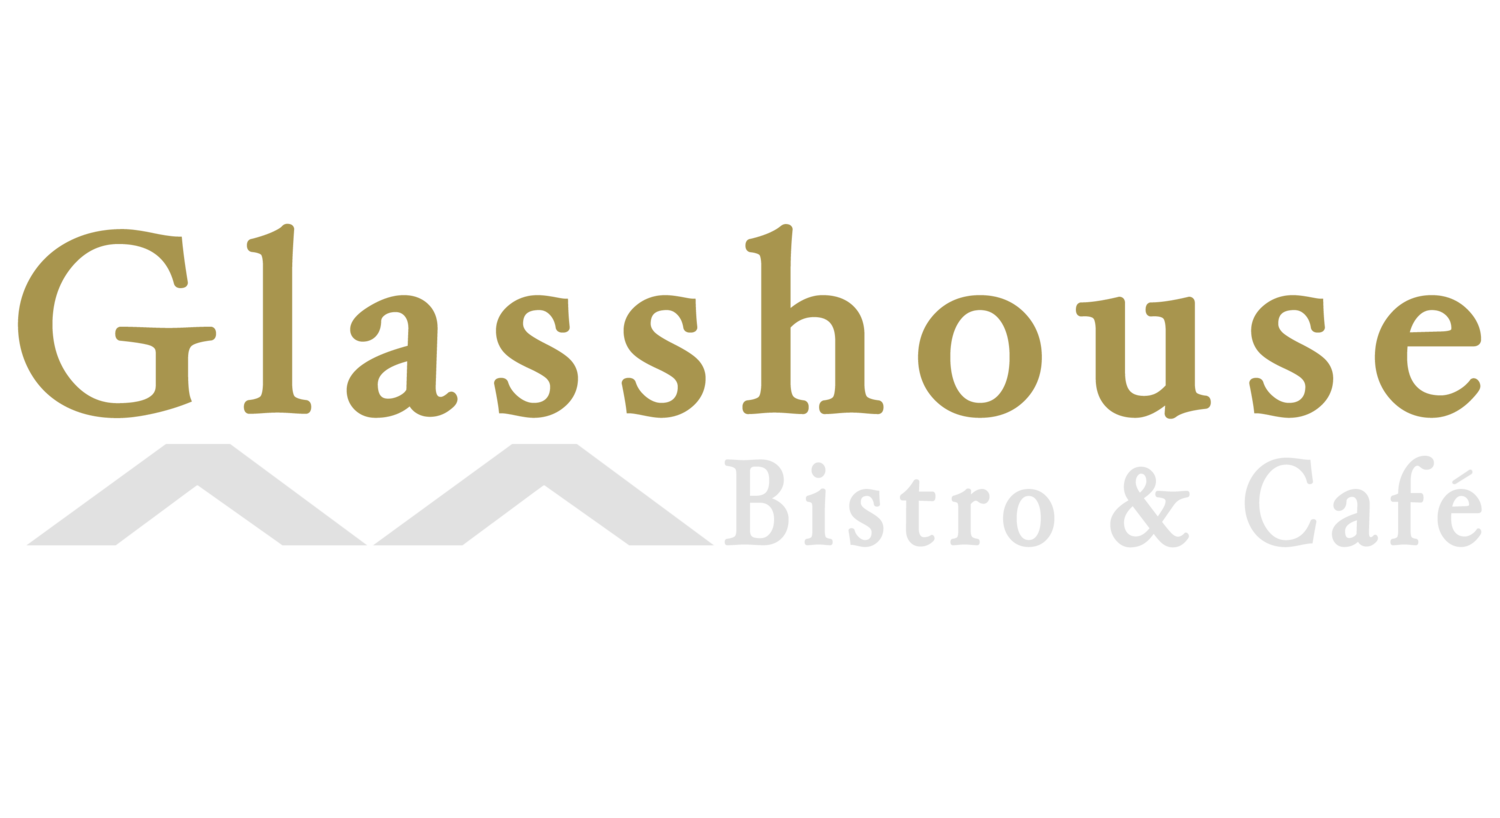 Glasshouse Bistro & Cafe